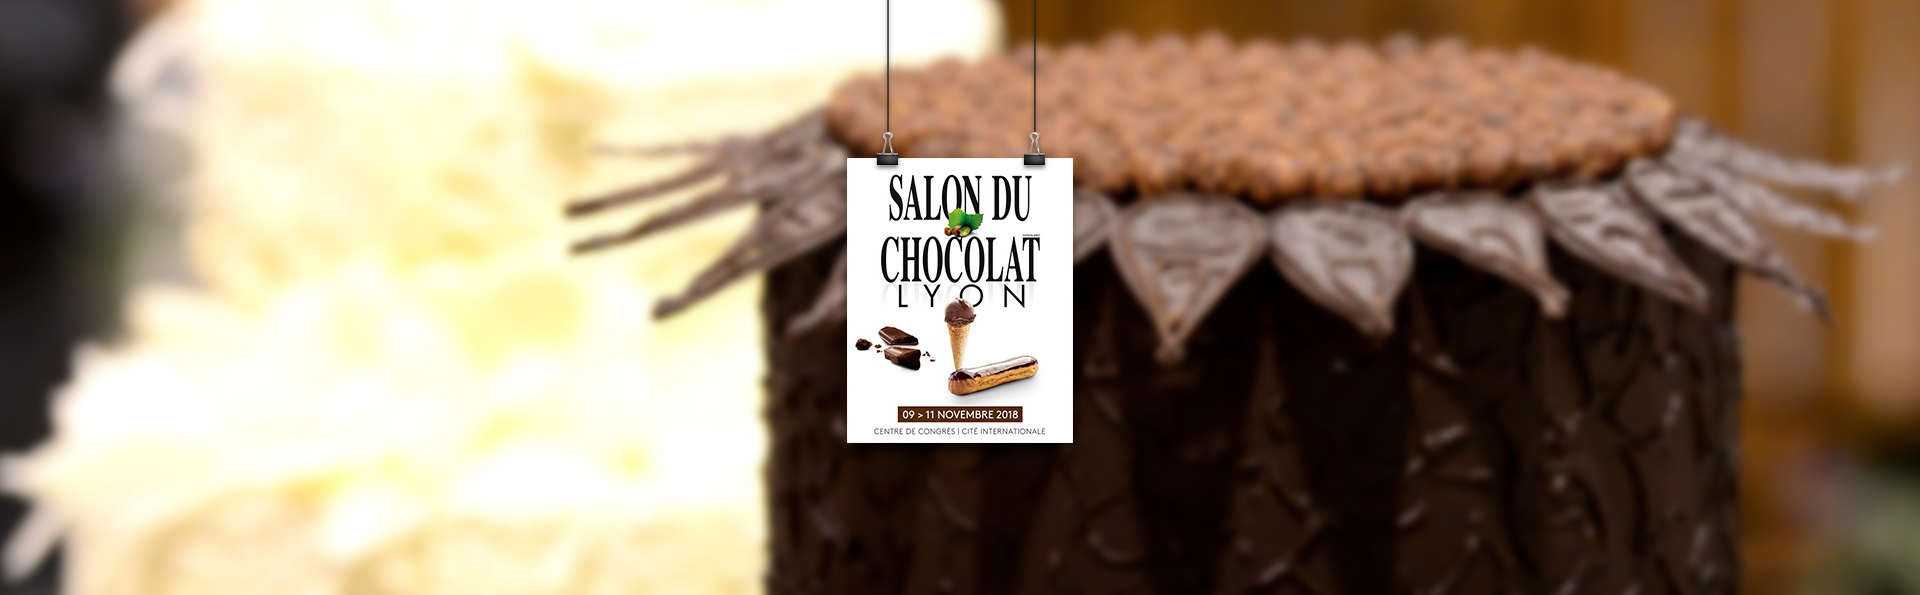 Salon Du Chocolat Billet Week End Culturel Lyon Avec Entrée Au Salon Du Chocolat 2018 Pour